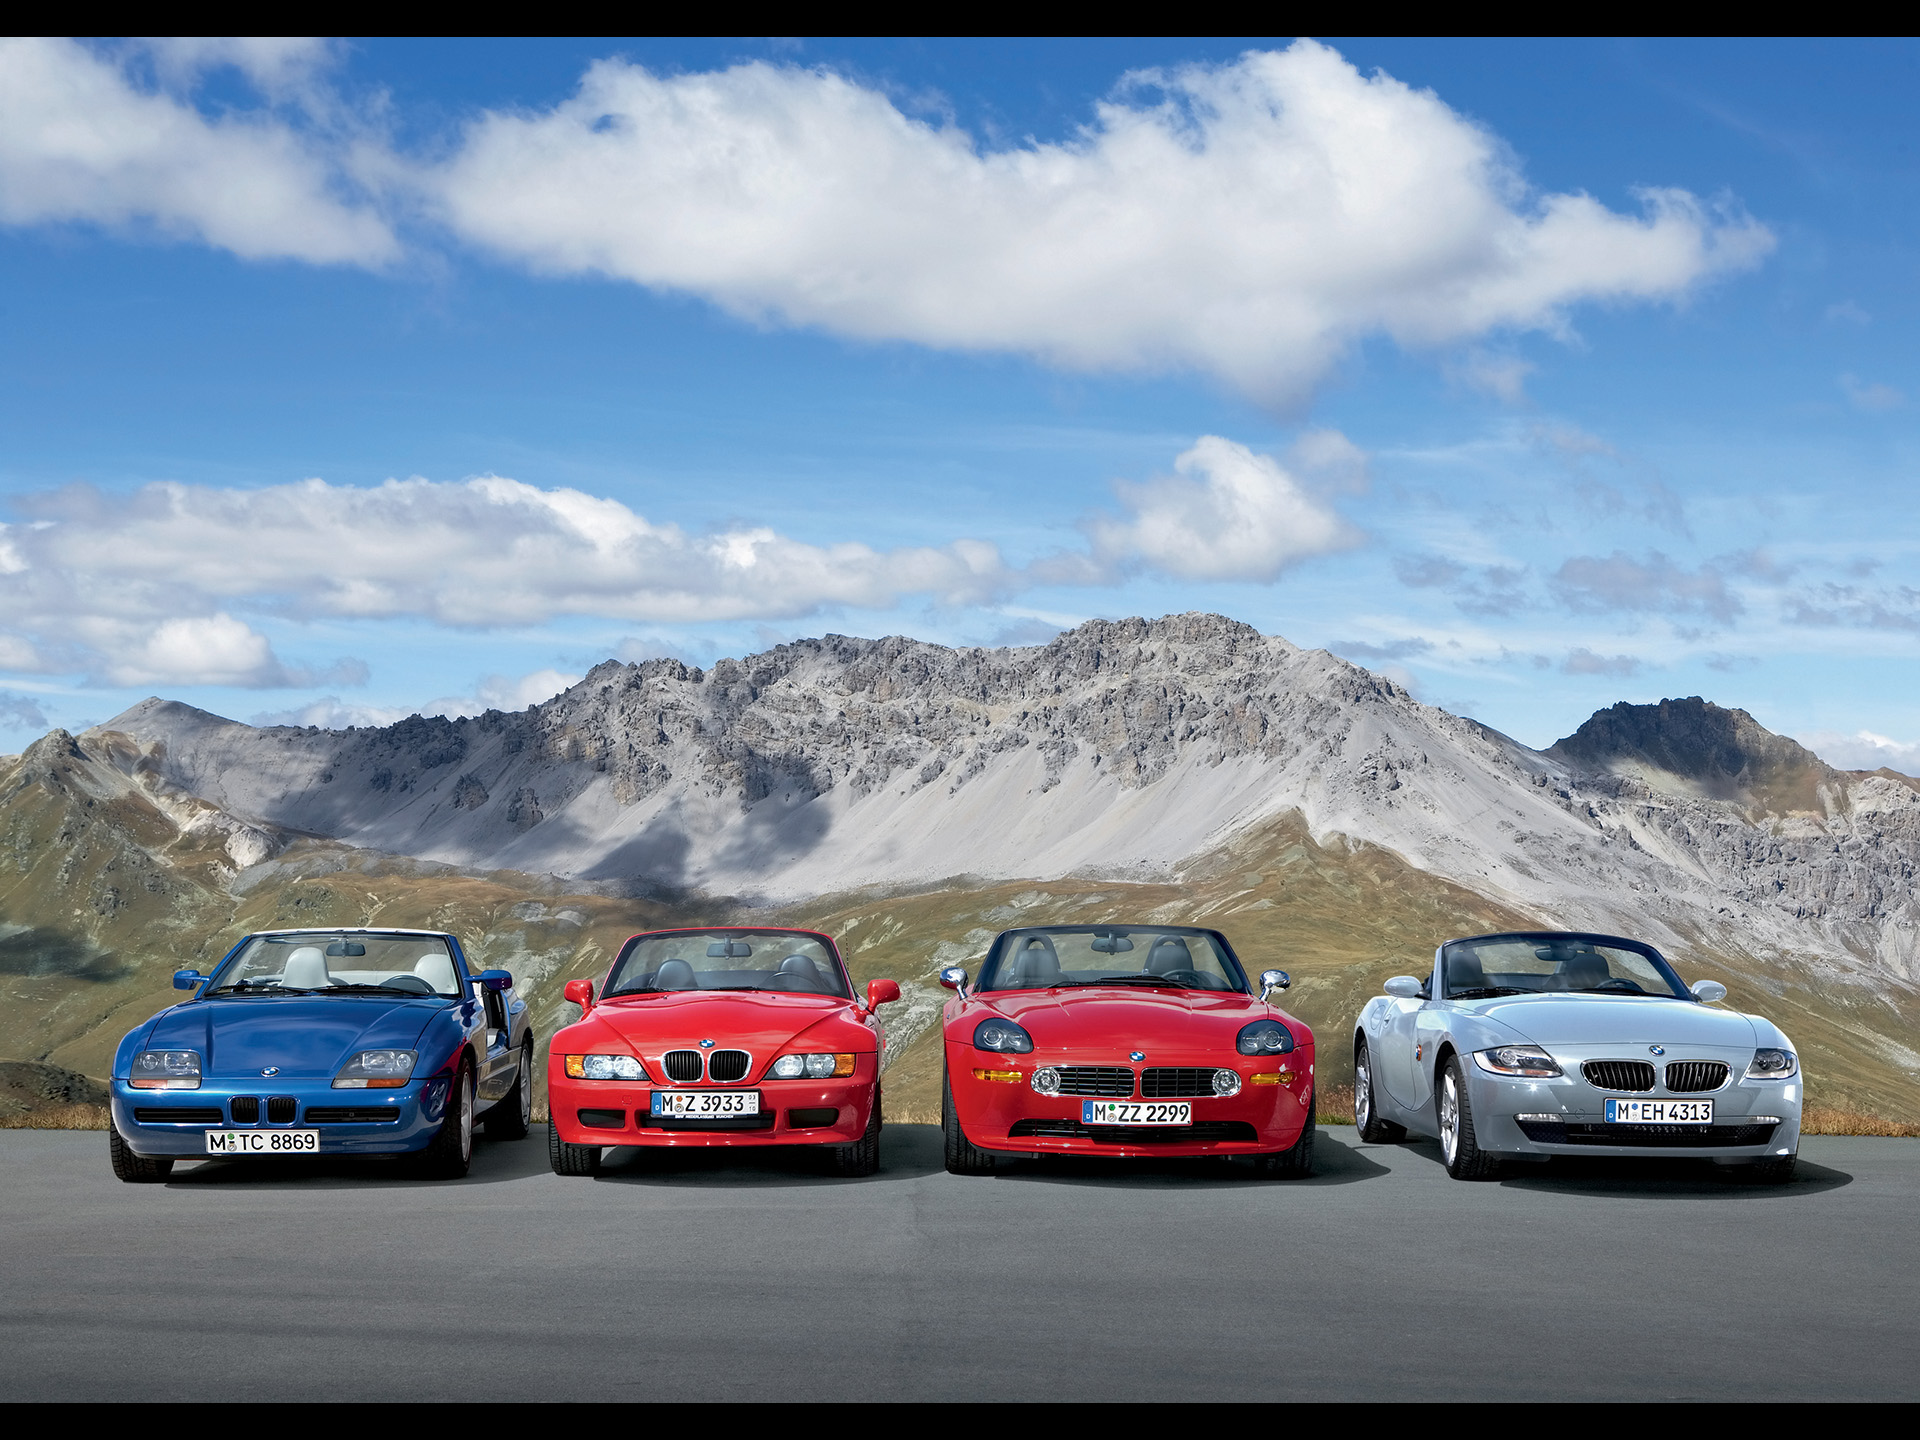 bmw z series images #12